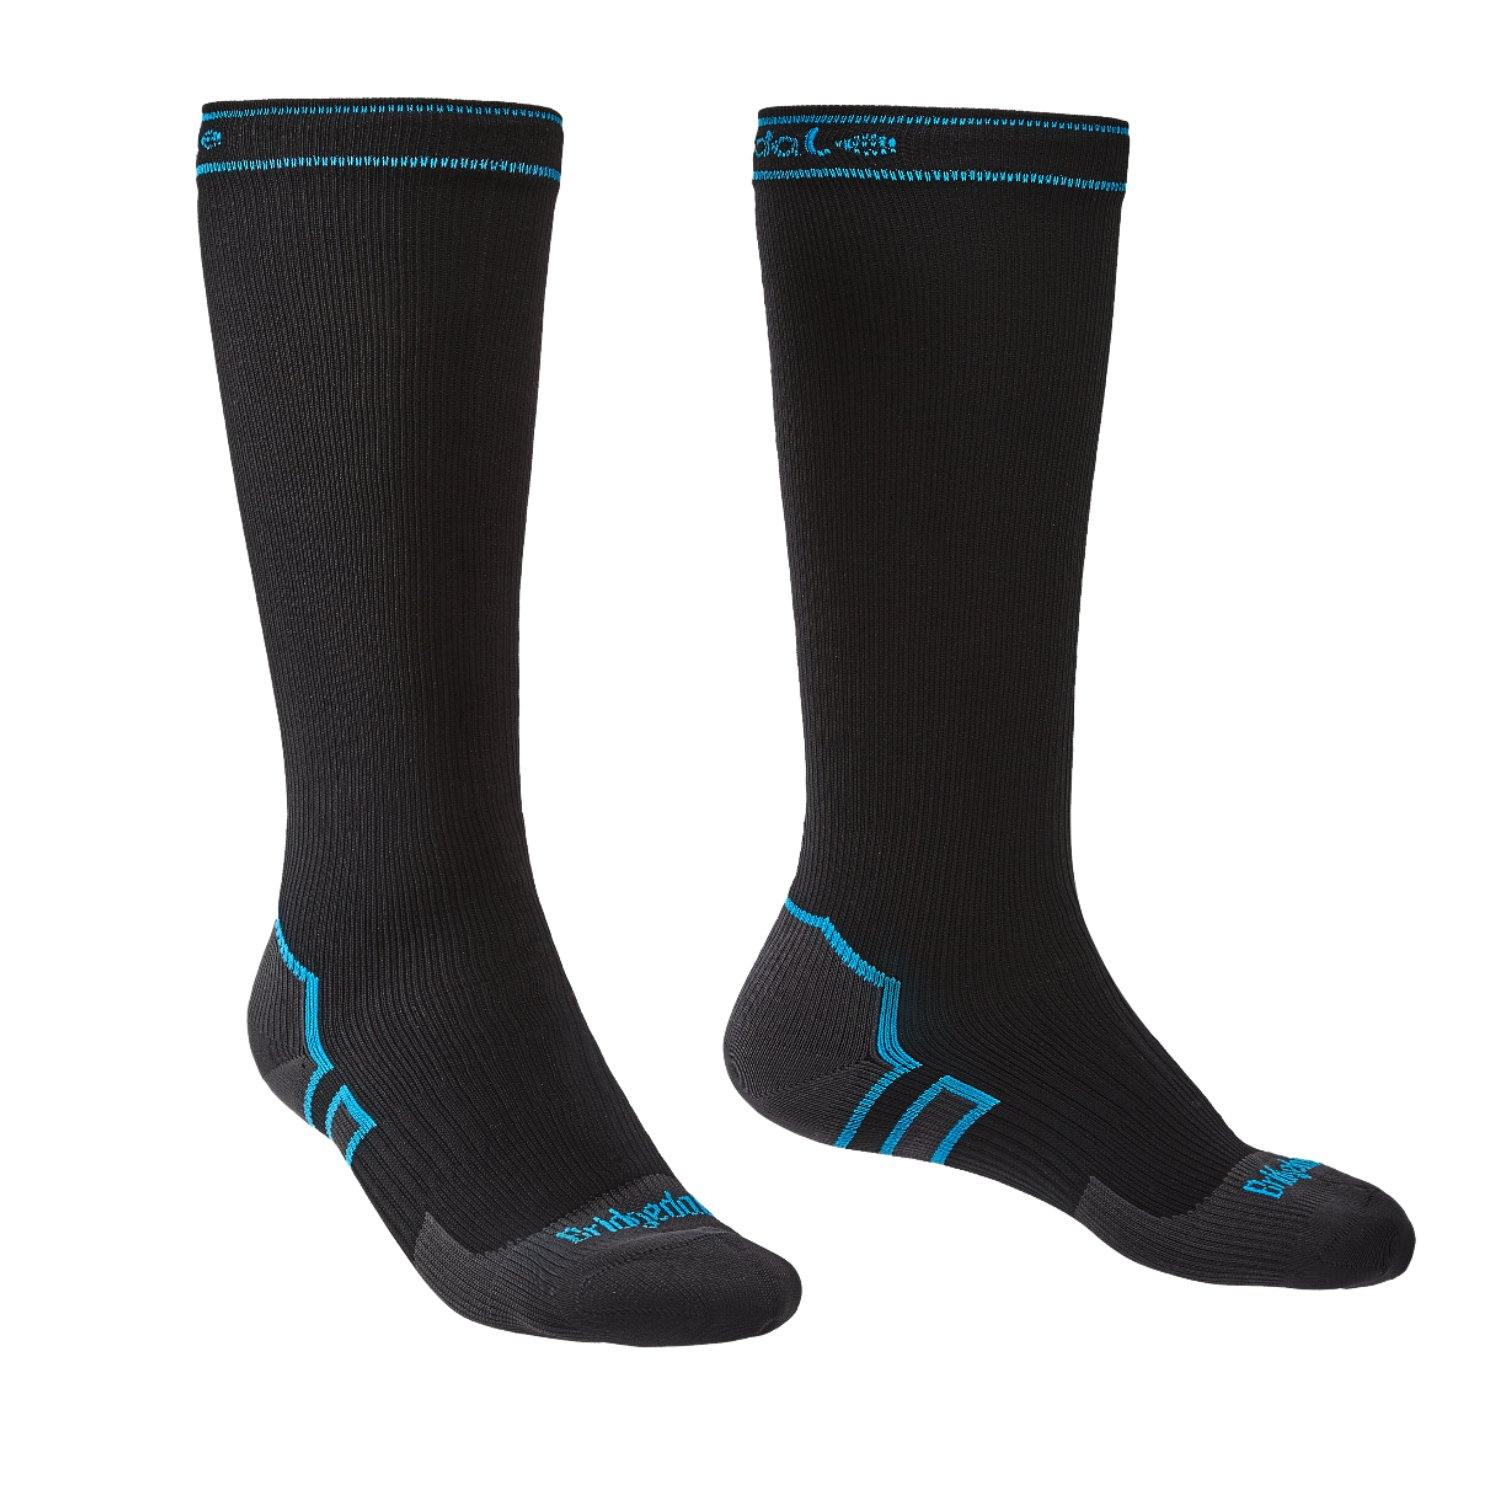 Bridgedale STORMSOCK Midweight Knee High Socks (Unisex)